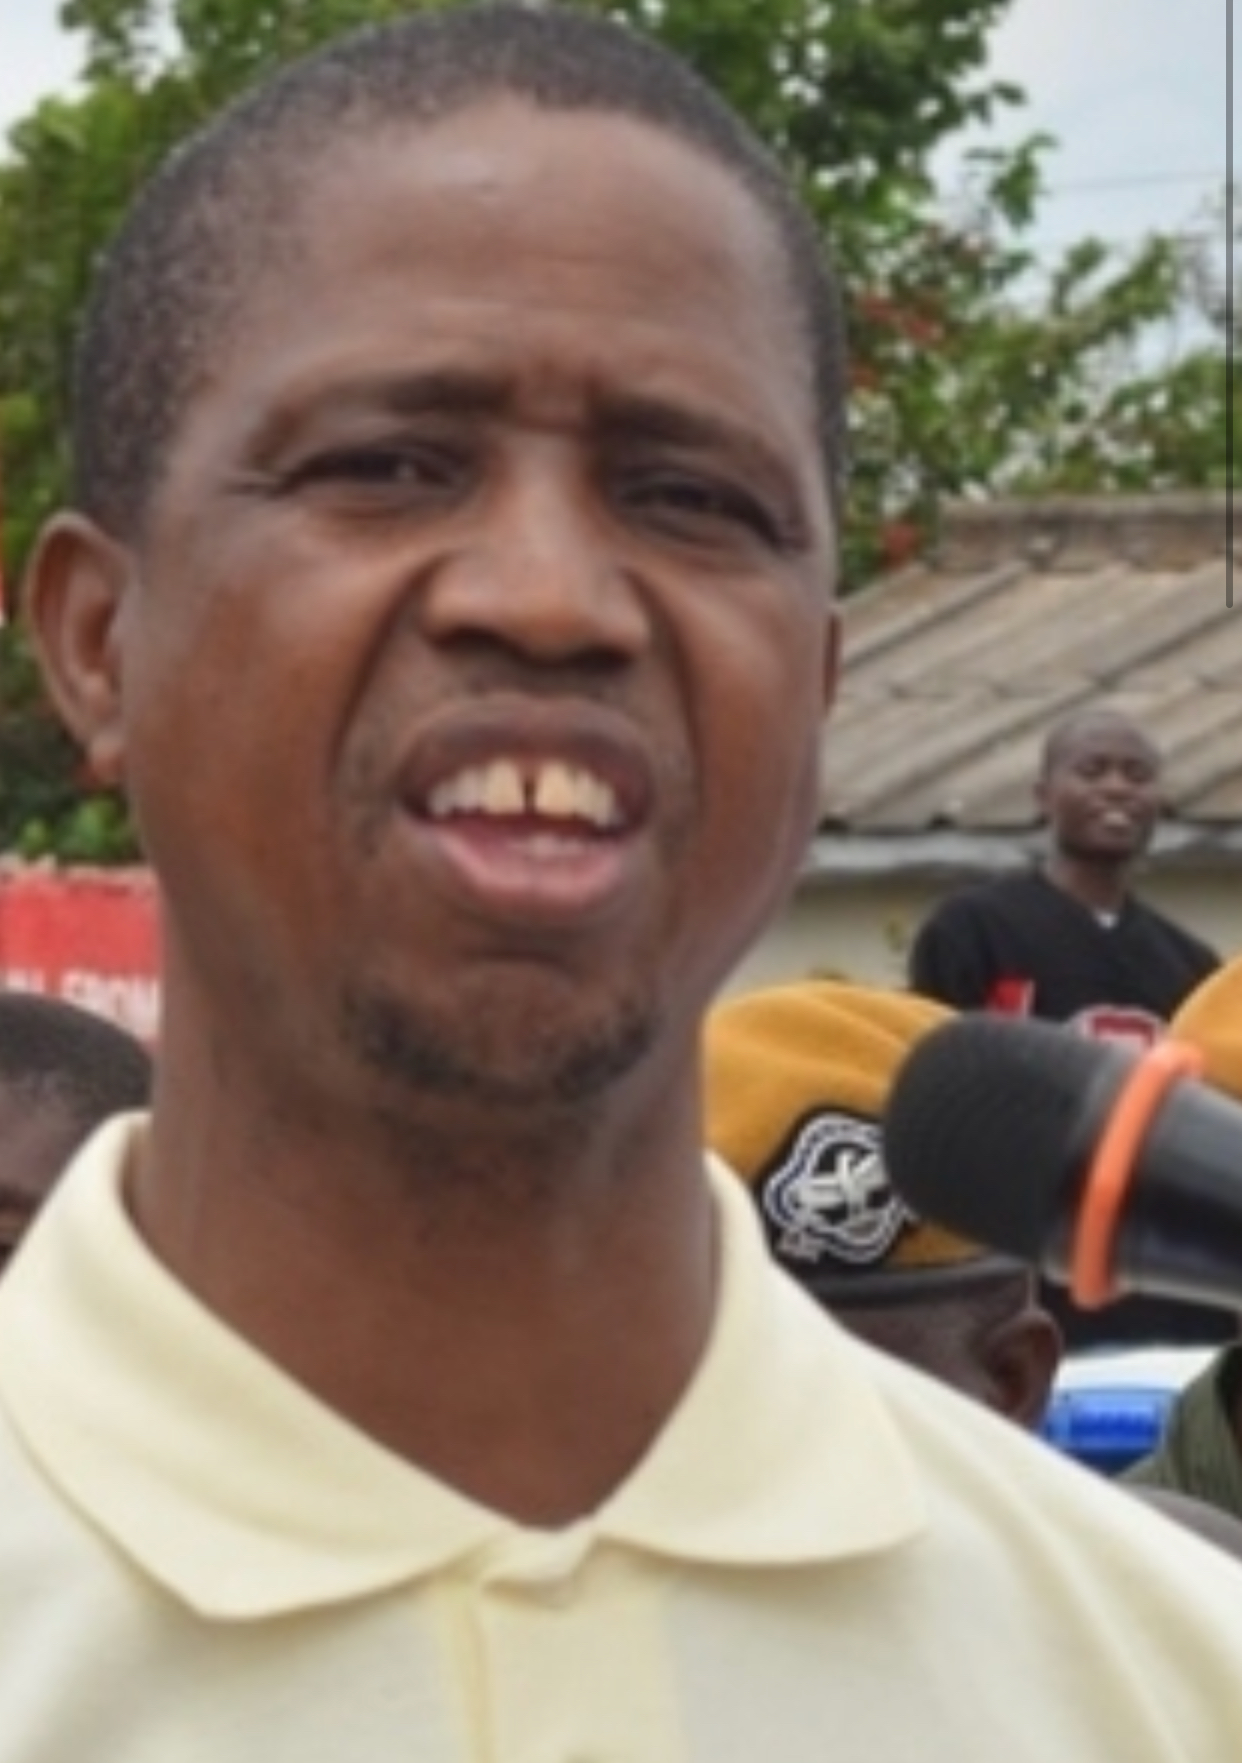 Before elections, all Zambians knew Lungu  was a thief